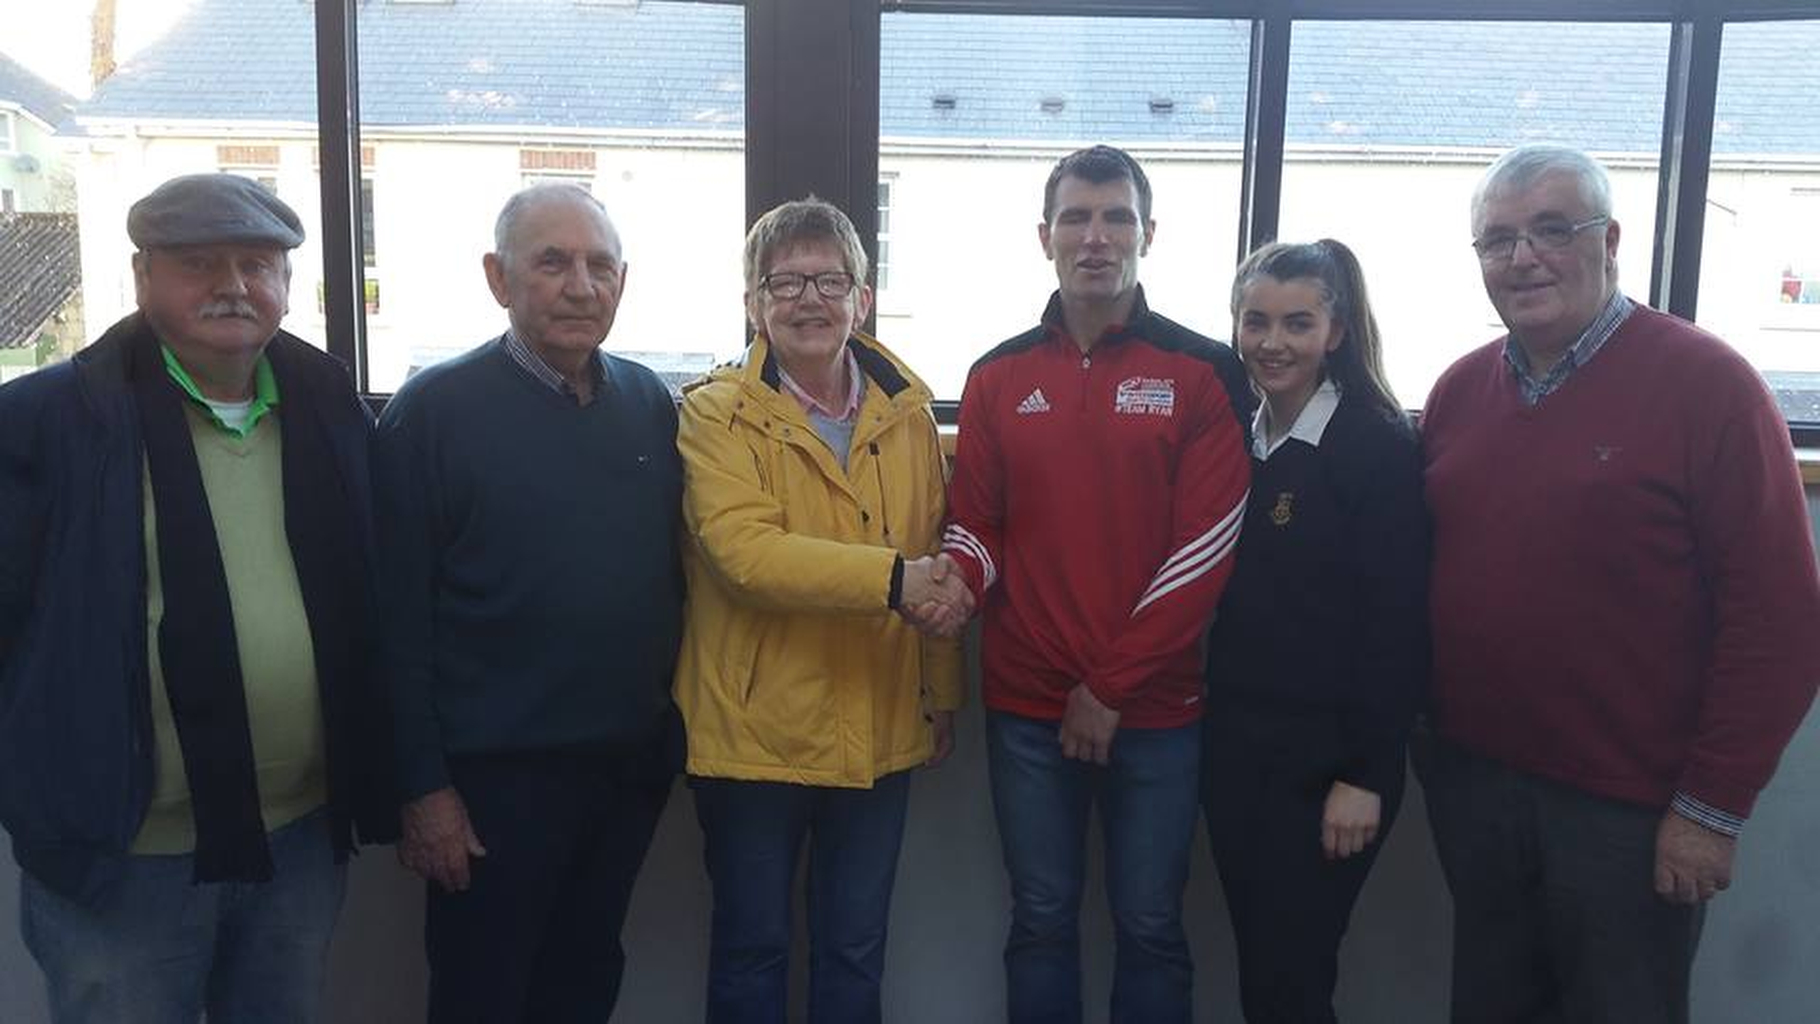 Ita Daly who was the lucky winner in the Letterkenny Credit Union Draw. pictured as she is congratulated by Danny Ryan who made the presentation pictured with members of the Letterkenny Credit Union board.